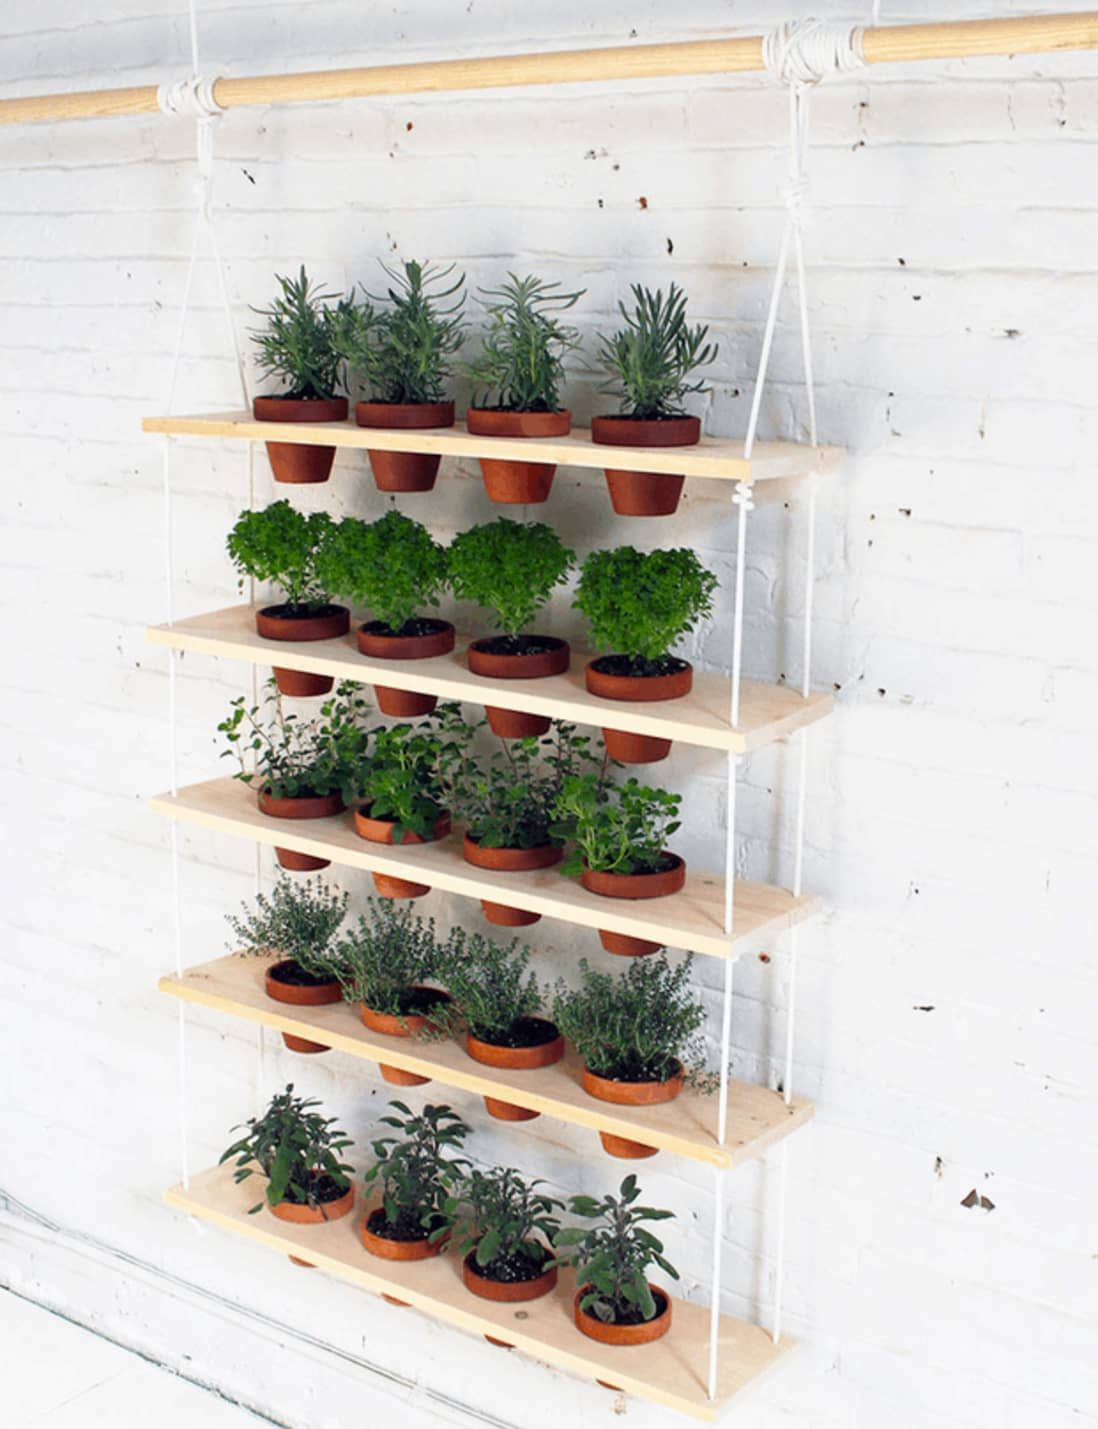 15 Indoor Garden Ideas for Wannabe Gardeners in Small Spaces is part of Outdoor herb garden, Indoor herb garden, Diy herb garden, Herb garden design, Vertical garden diy, Herbs indoors - No patio  No problem  You can still build a lush summer garden inside your four walls, no matter how much living space you have  We've rounded up more than a dozen indoor garden projects that take shape in new and different ways   growing up, hanging down, or simply making use of otherwise unused space